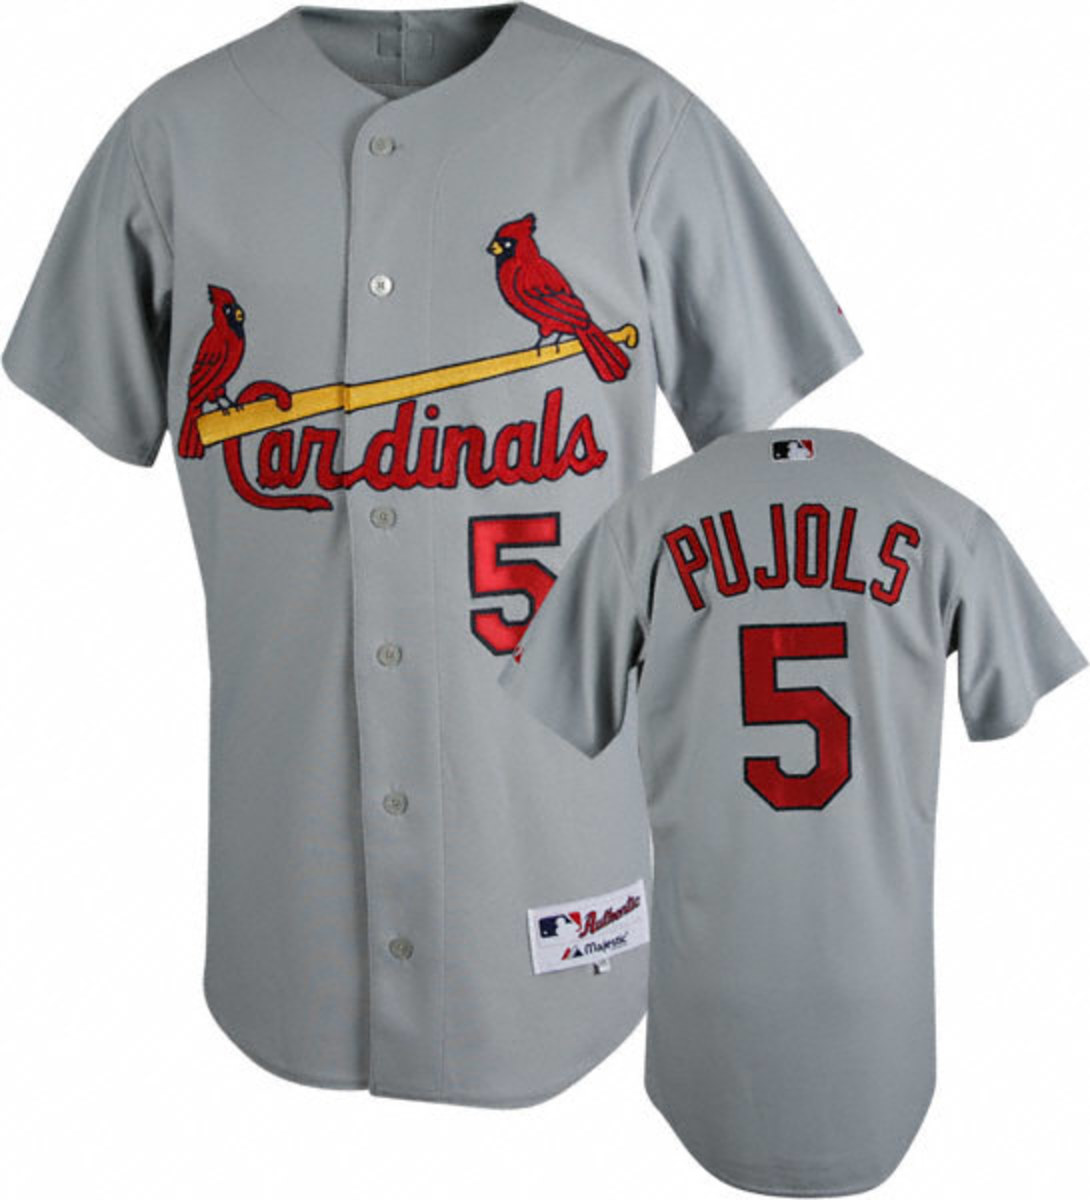 best cheap 85742 f8544 Is Your Authentic MLB Jersey Real? Buying Majestic Baseball ...